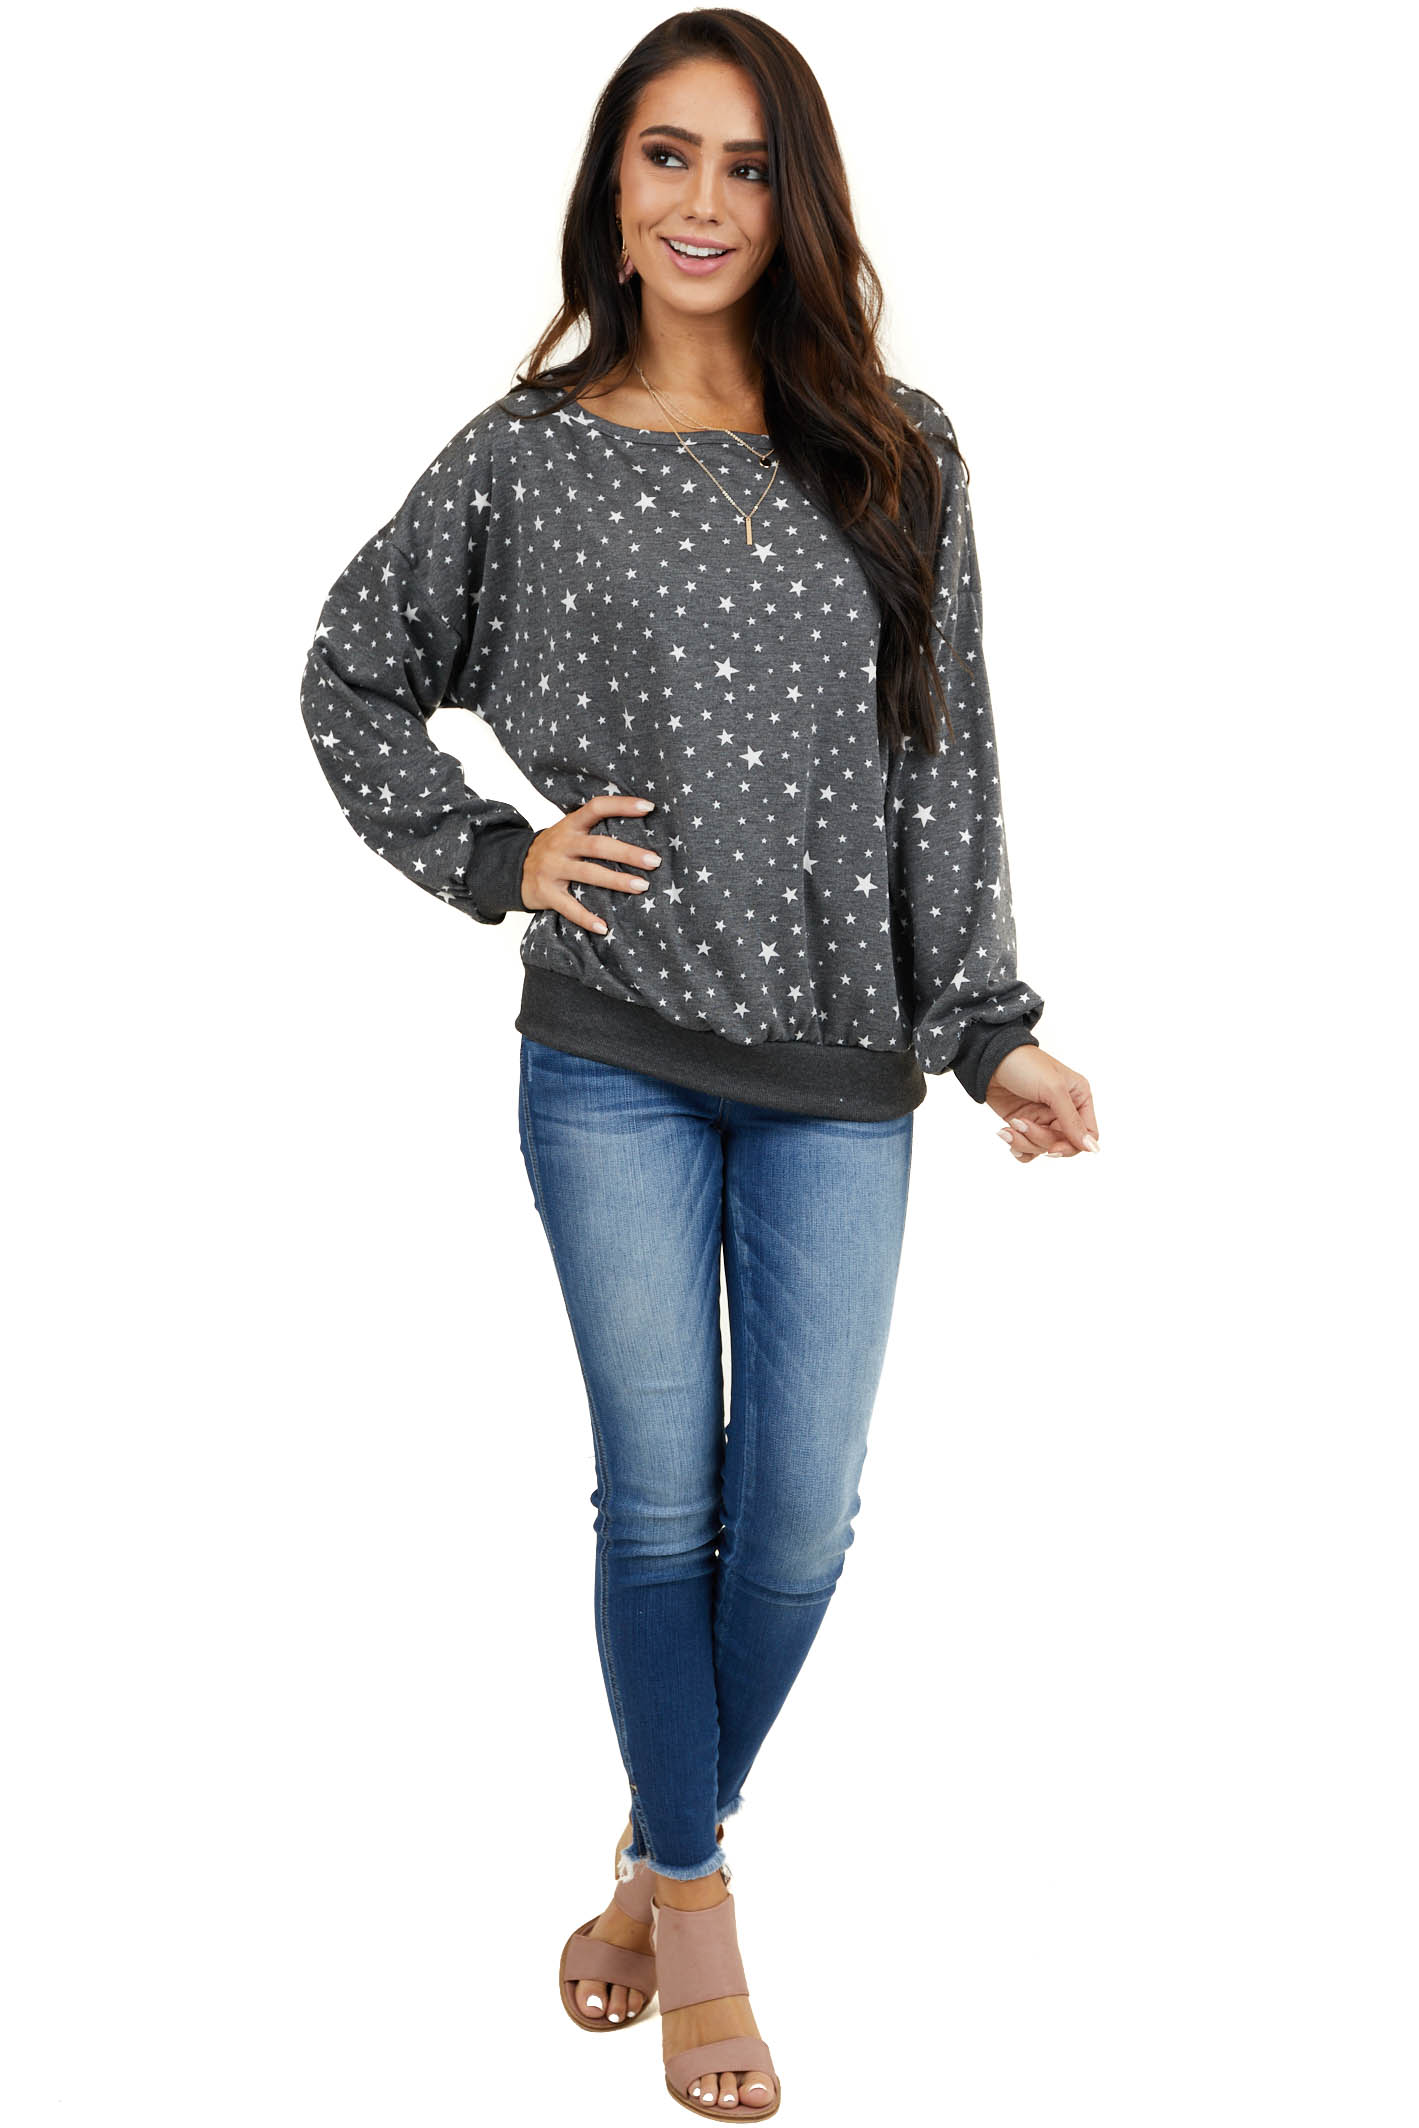 Stormy Grey Long Sleeve Top with Wide Neck and Star Details